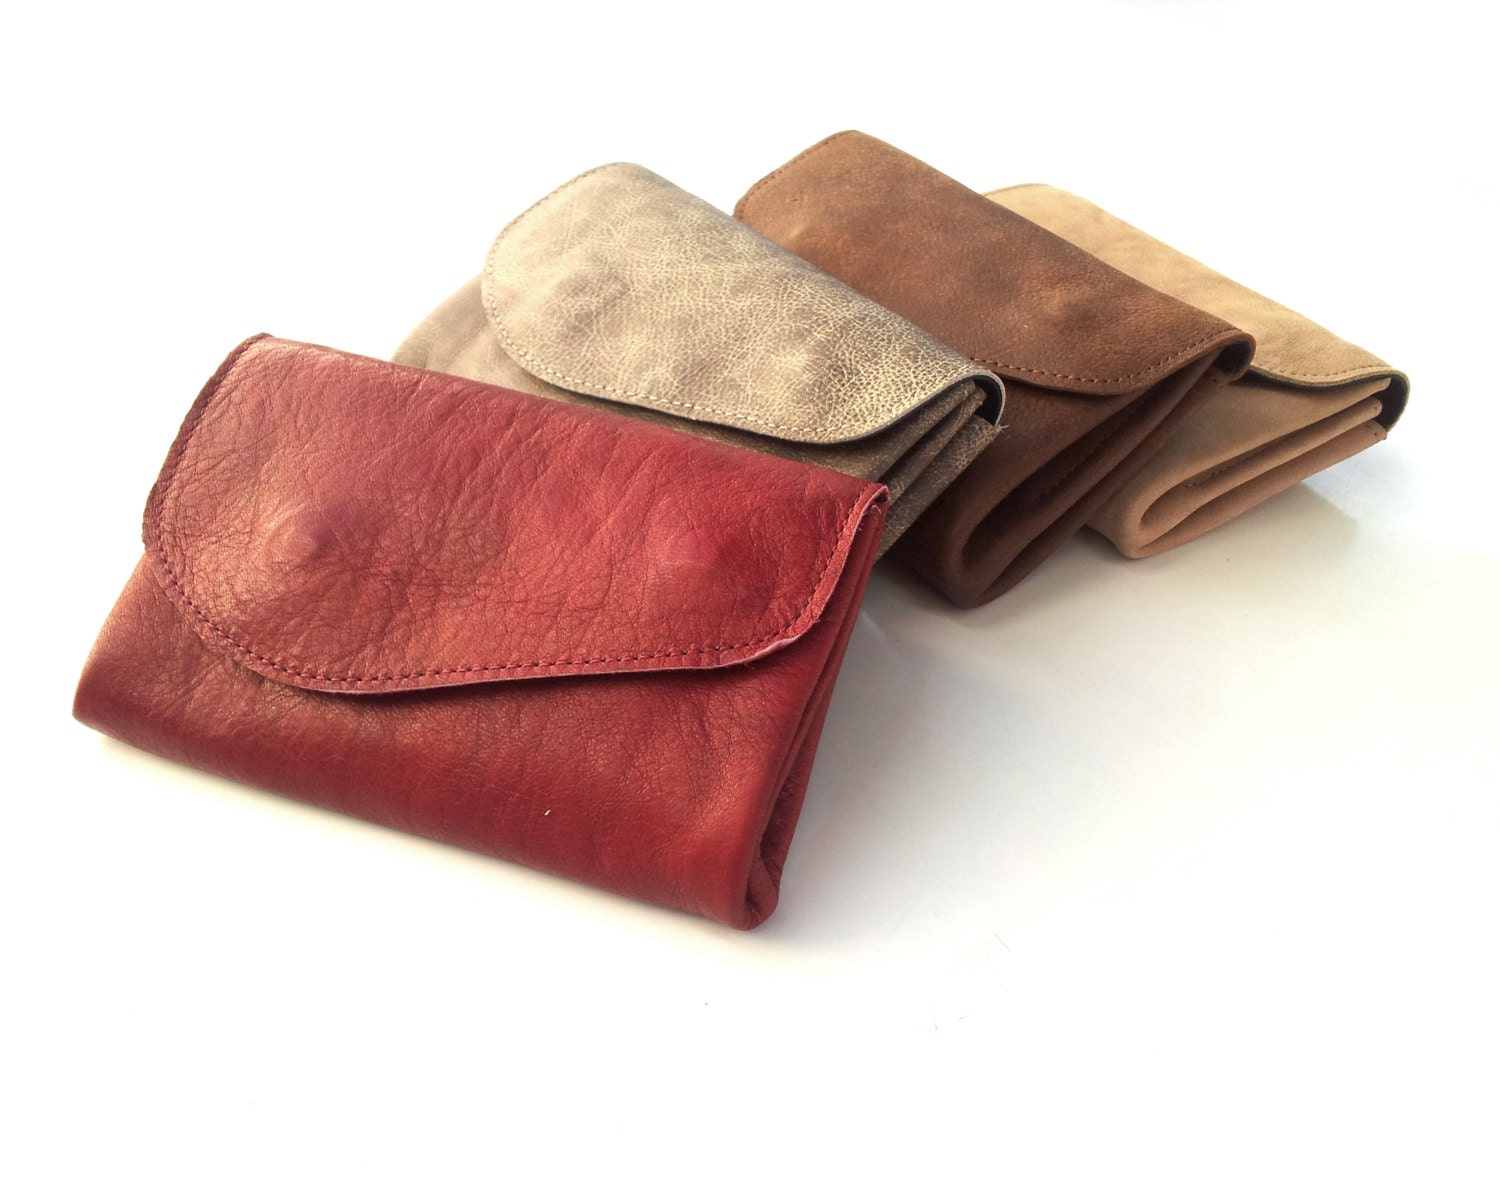 Nude wallet, Women leather purse, leather clutch, coins wallet - TahelSadot